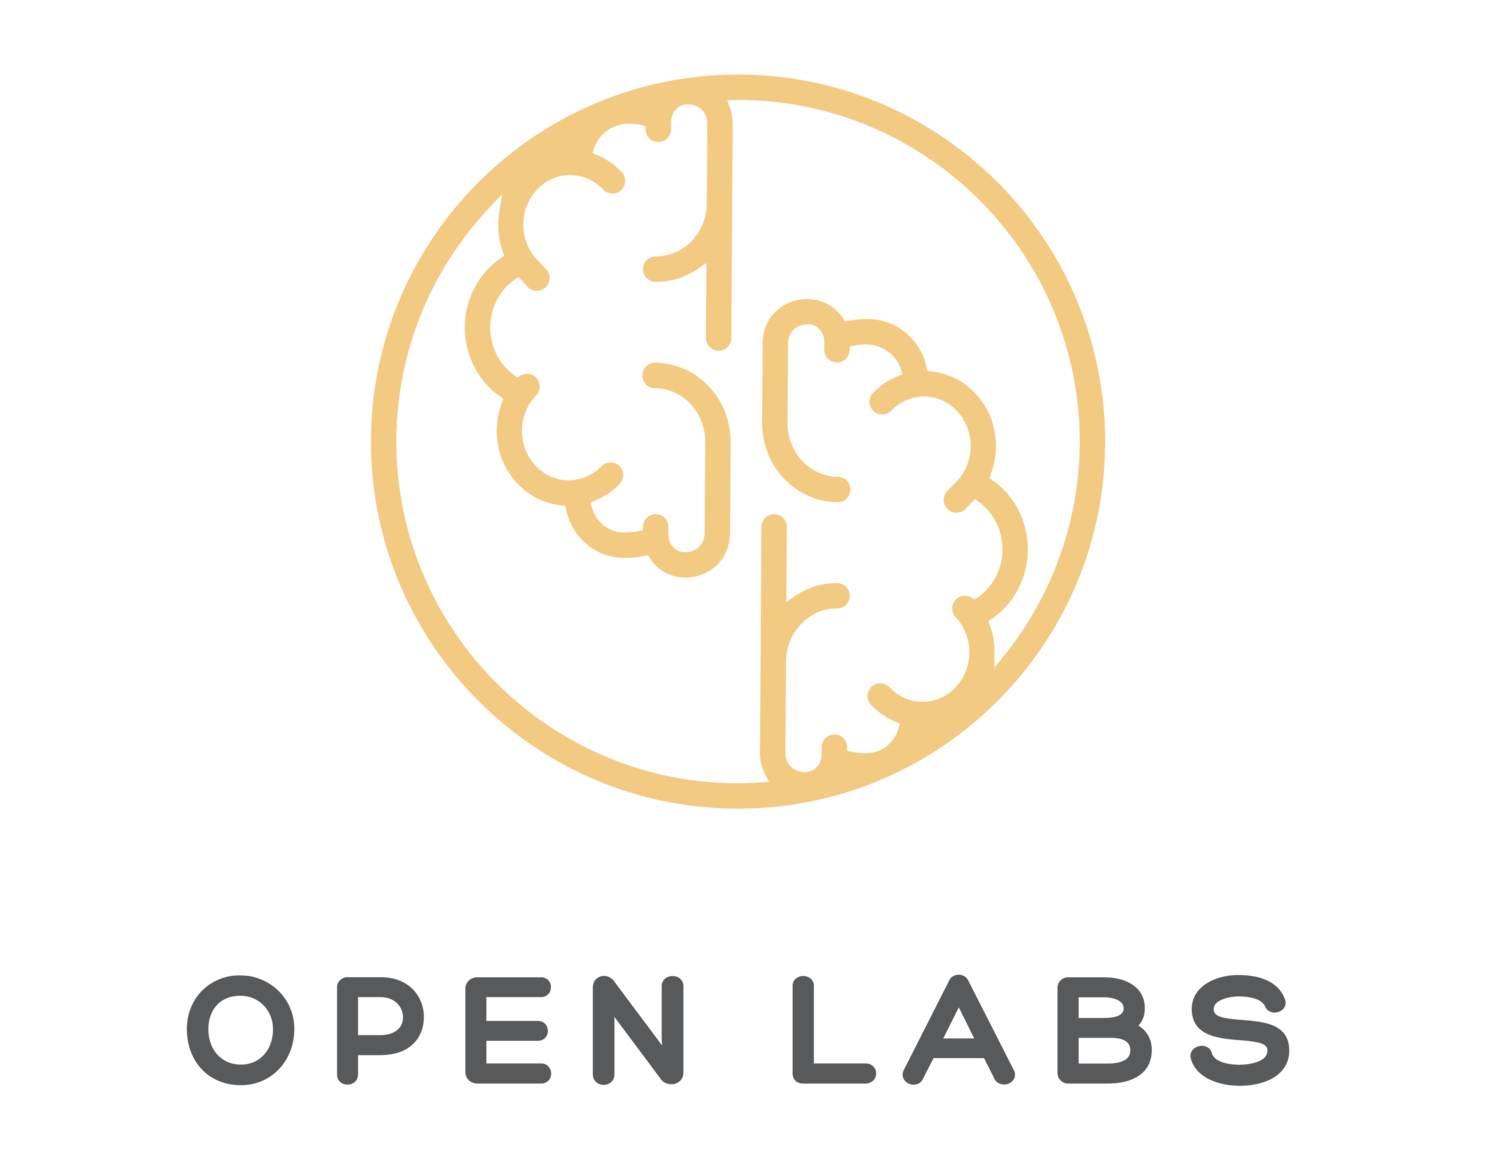 Open Labs